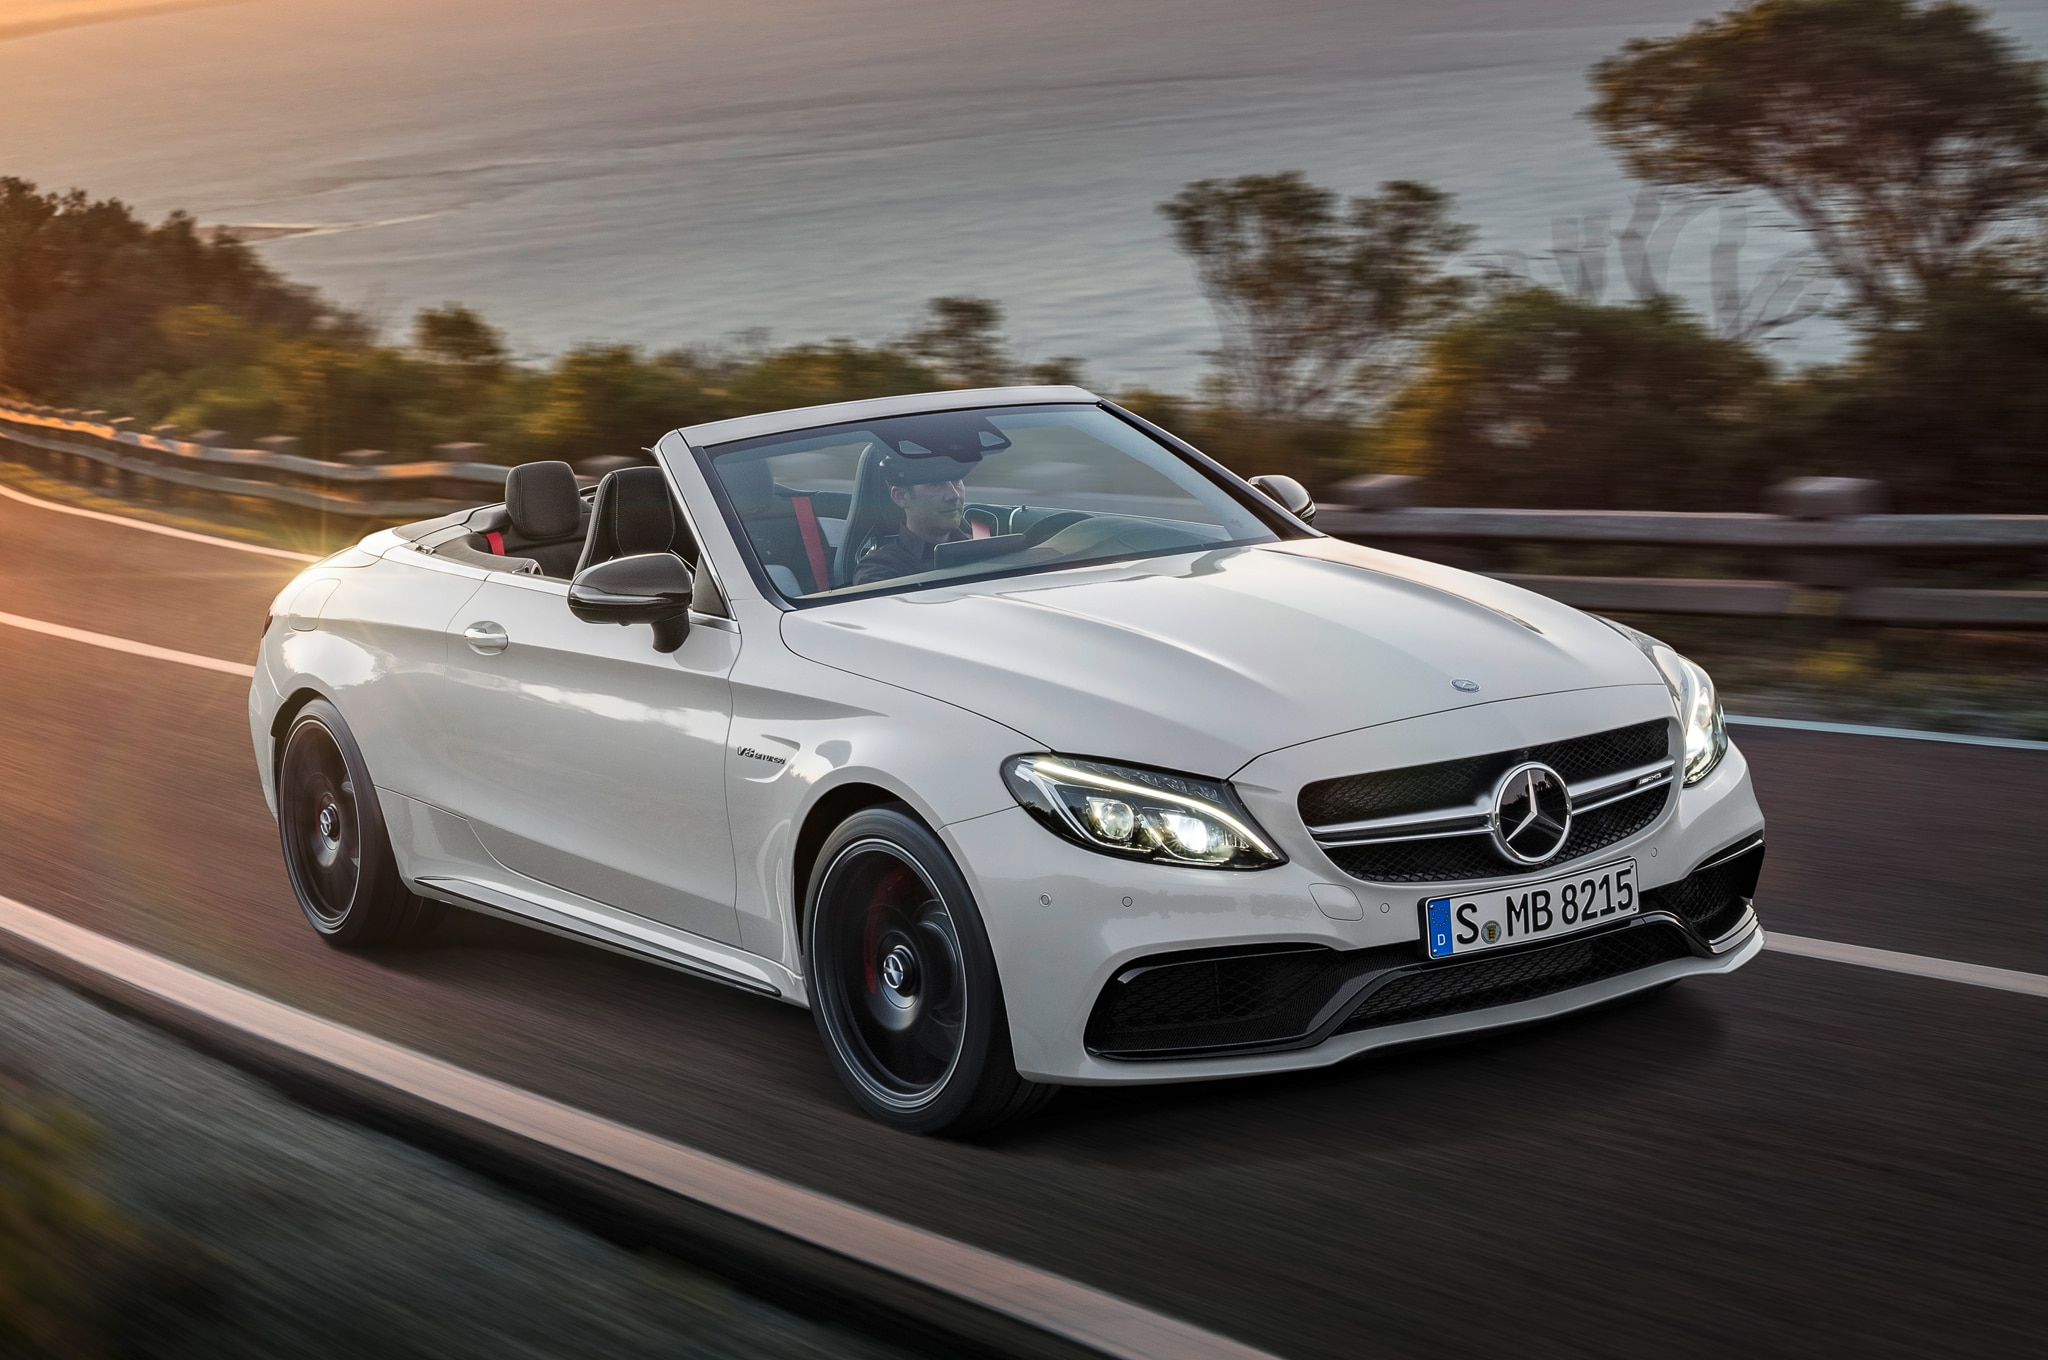 2017 Mercedes Amg C63 Cabriolet Revealed At 2016 New York Auto Show Alfa Romeo 166 Wiring Diagram With